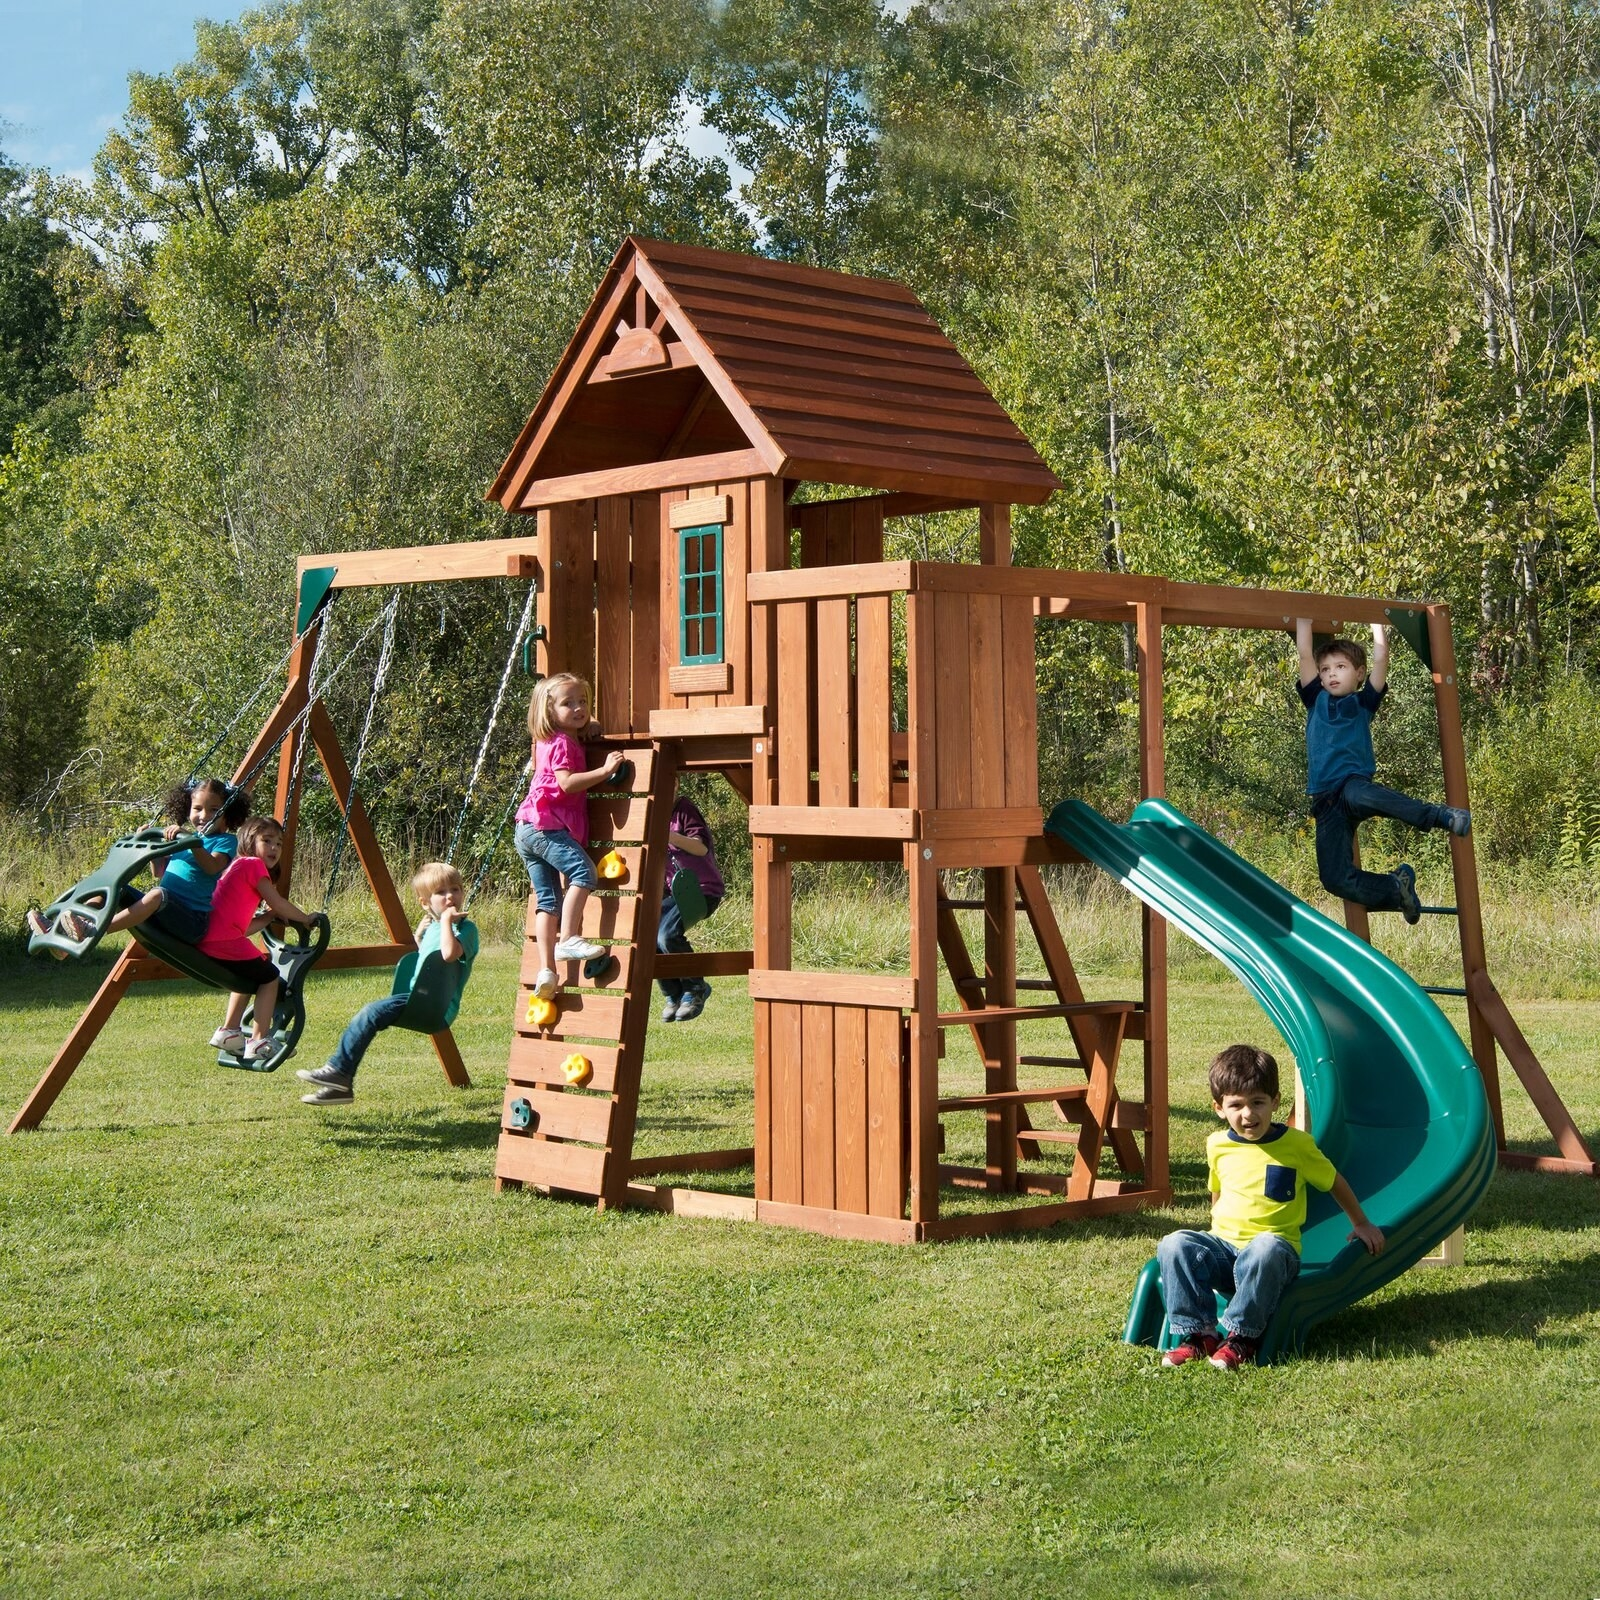 The swing set with kids playing on it